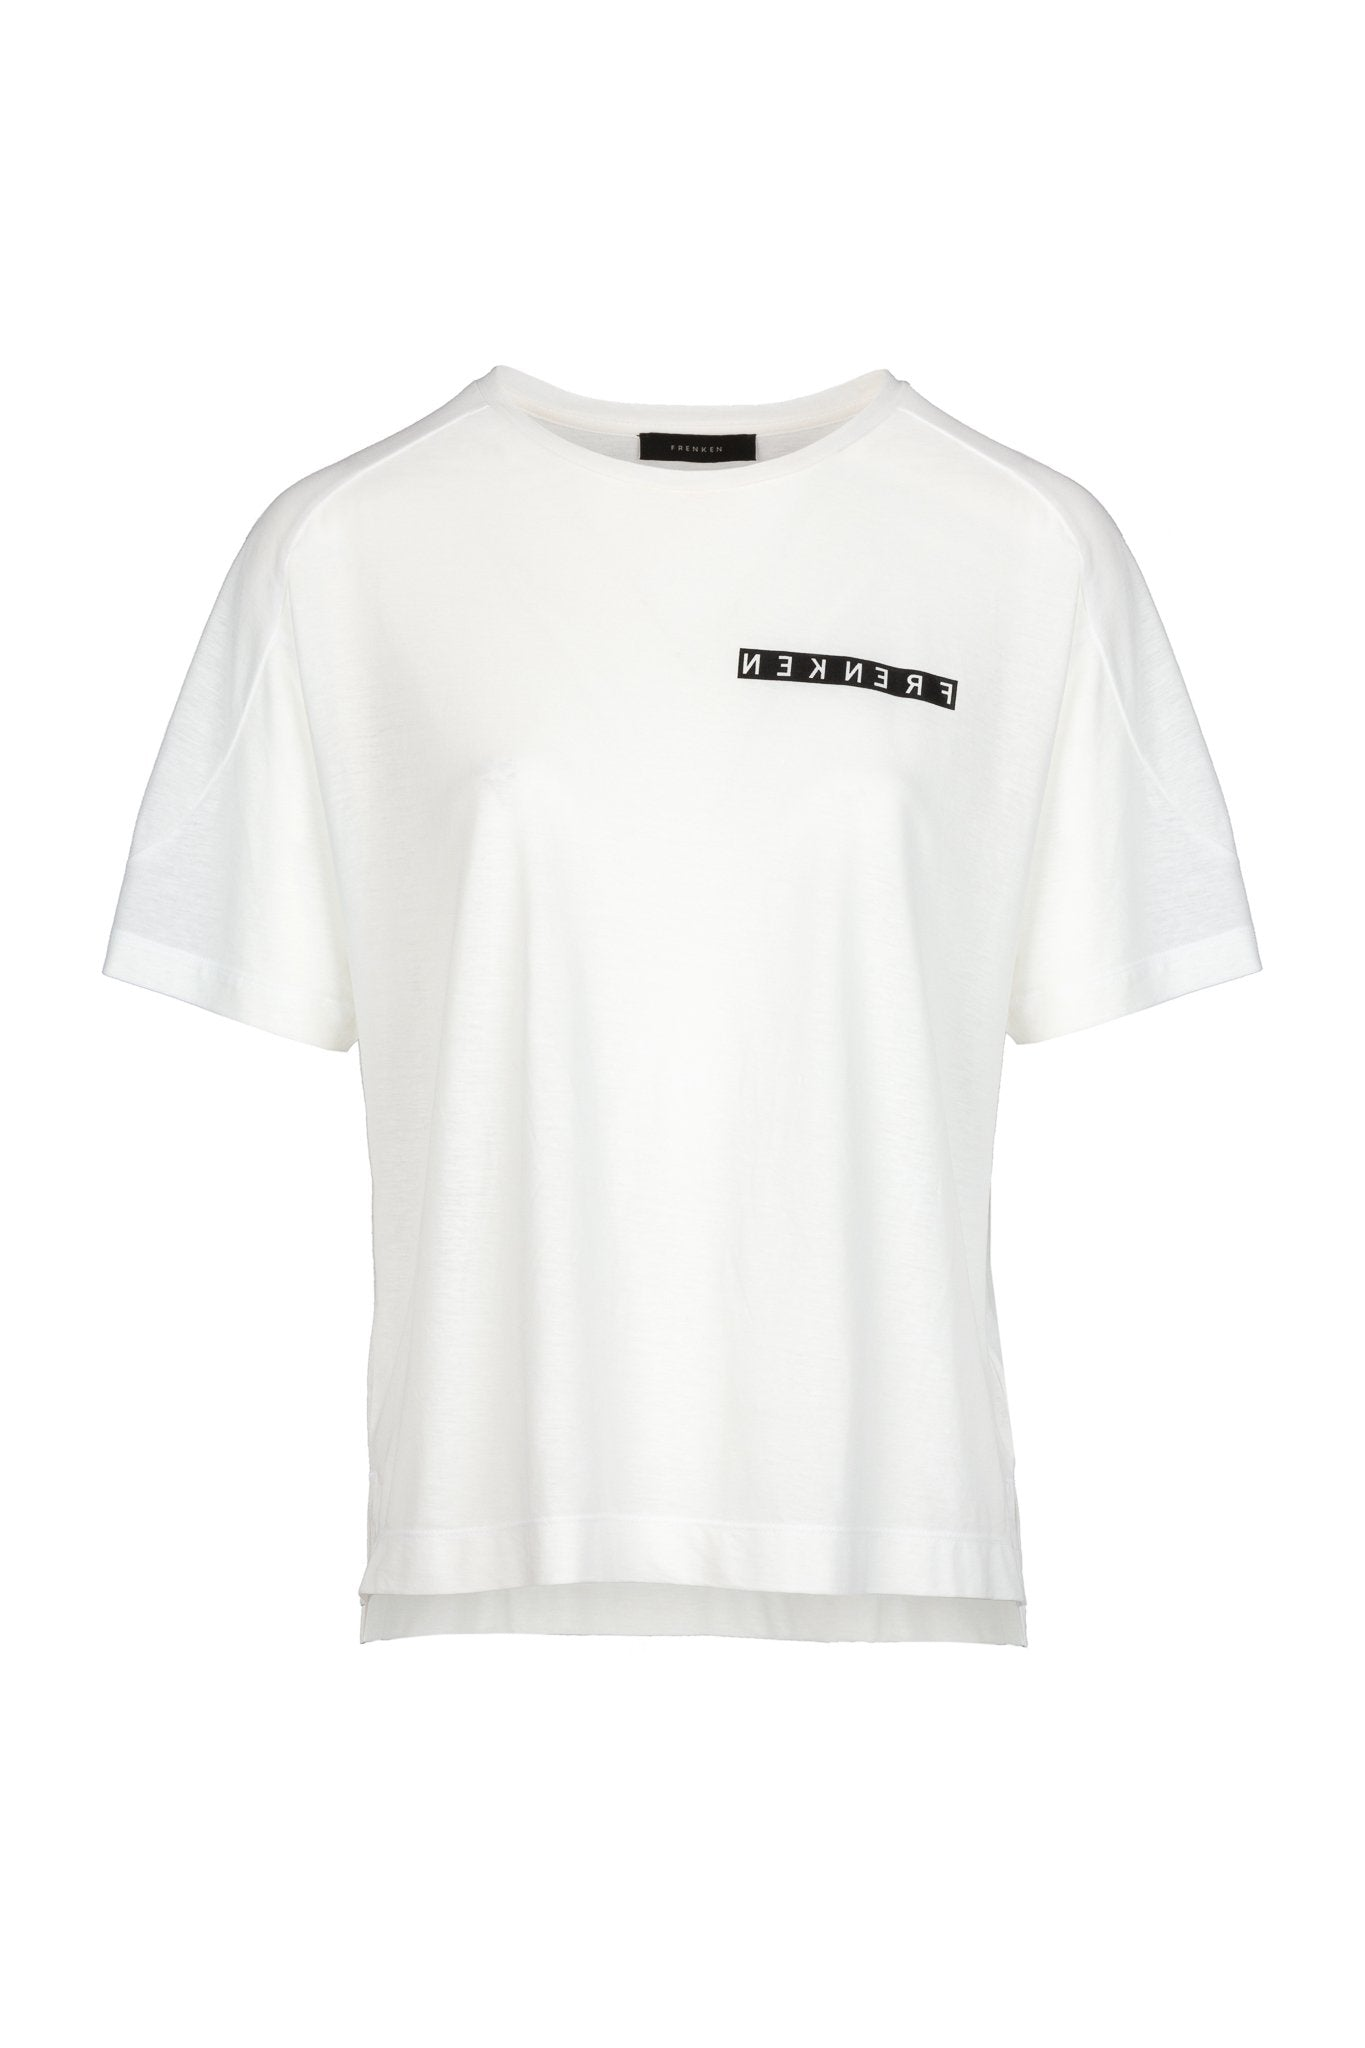 Off-white top. FRENKEN fashion. Relaxed fitted flimsy T-Shirt. Detailed with round seams at shoulder and printed mirrored logo.